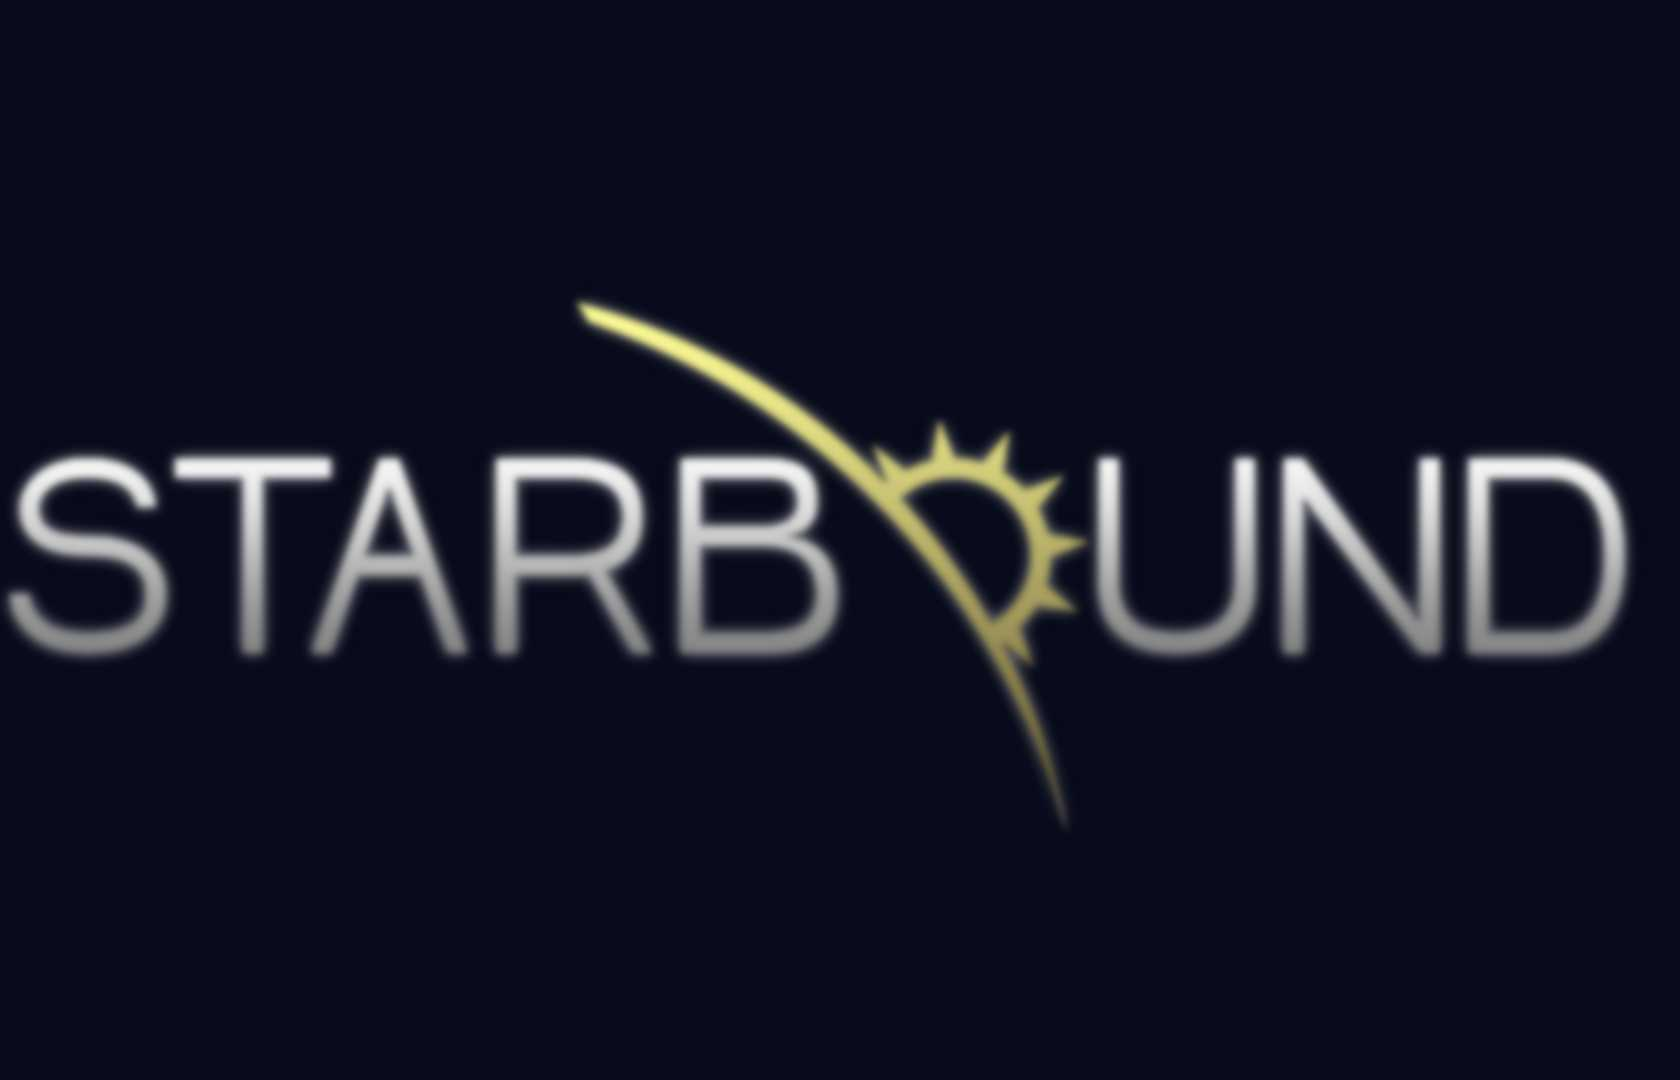 Mods Starbound Pearltrees Wiring Mod